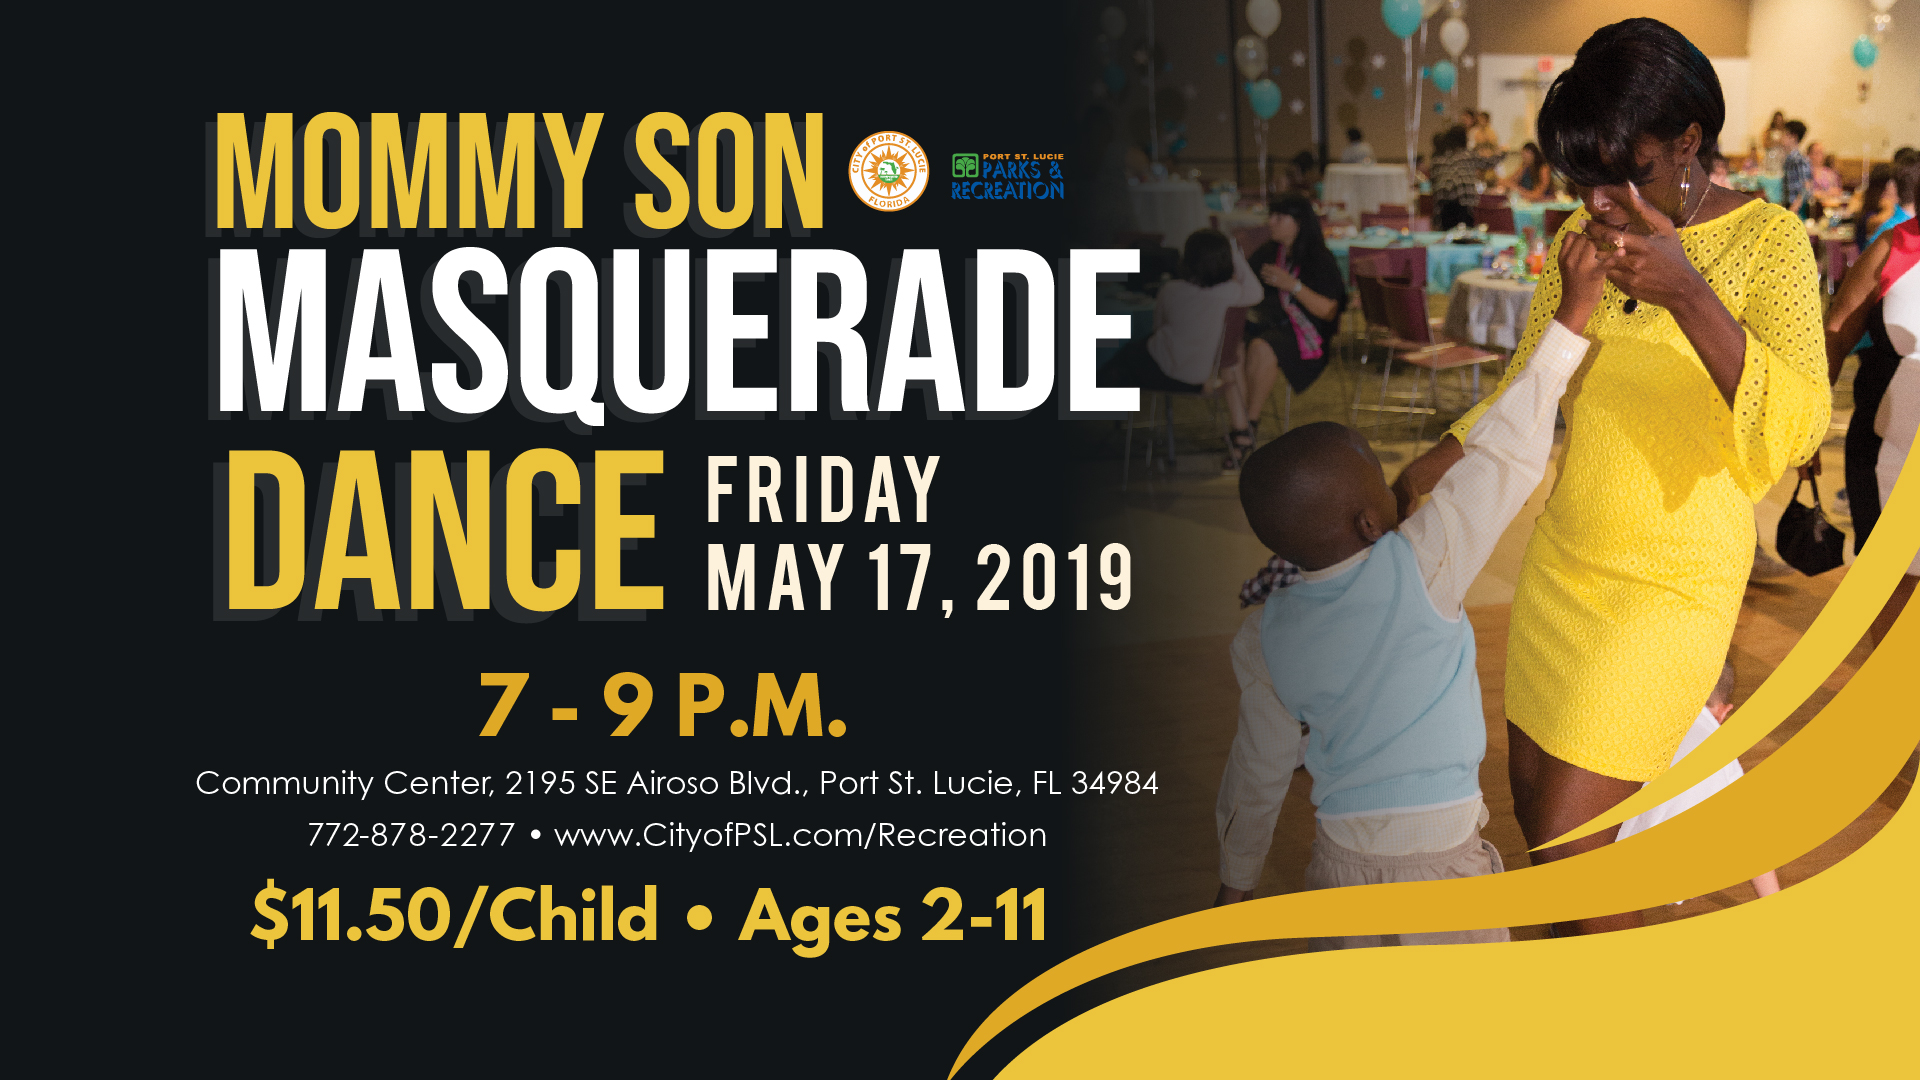 Mommy Son Masquerade Dance